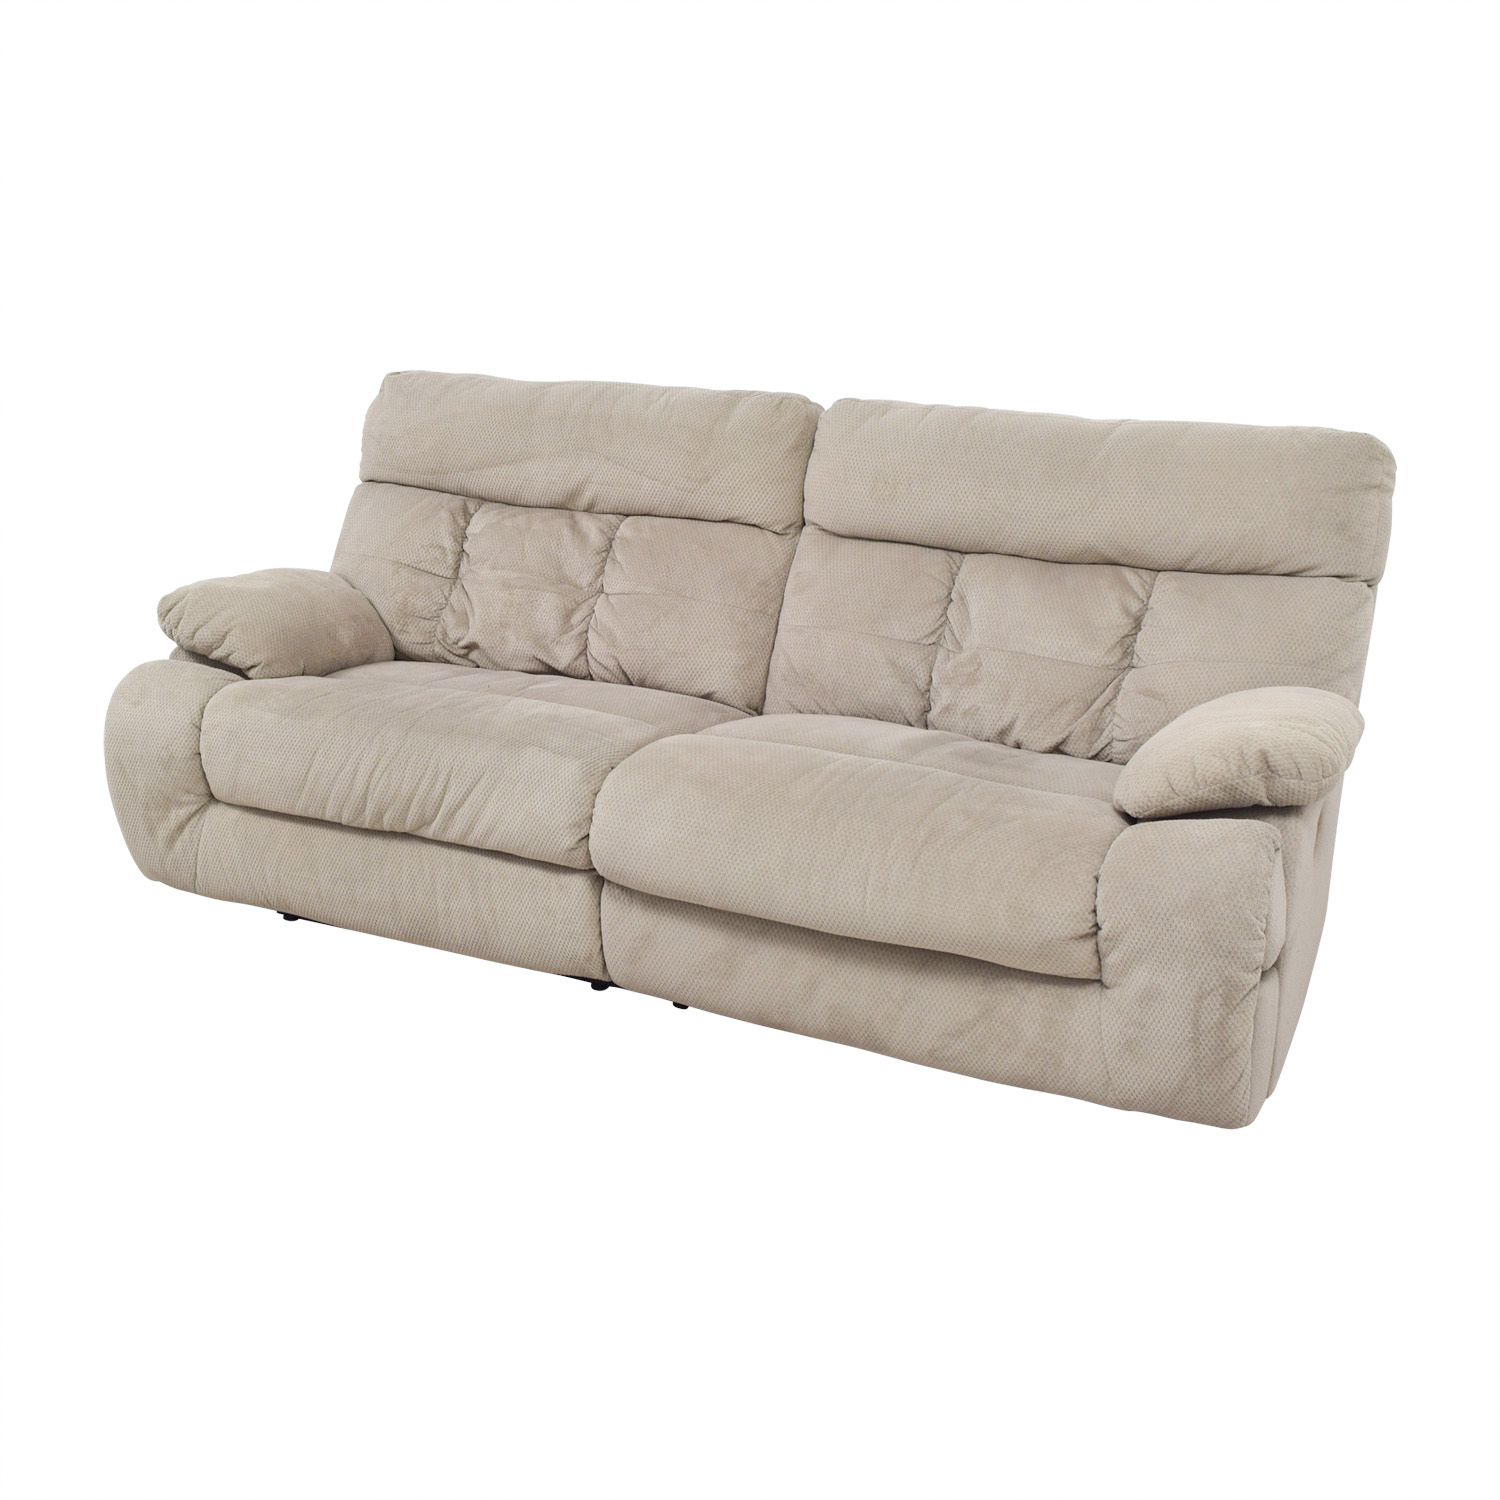 ashley furniture sofa sales lawson definition 75 off beige